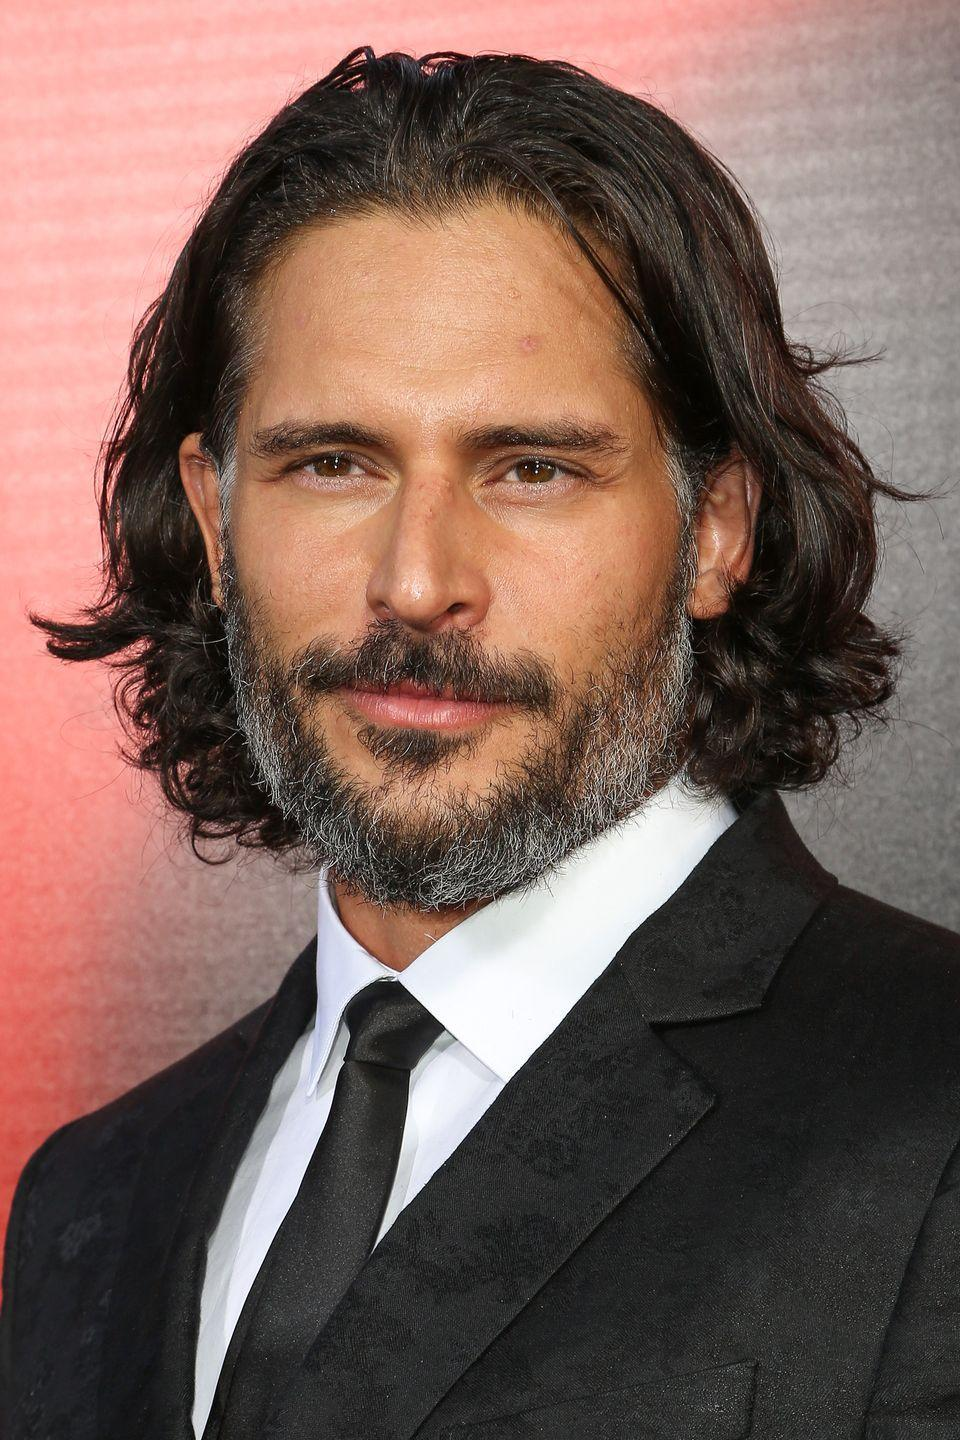 <p>Joe Manganiello is no stranger to shaggy hair—the <em><em>True Blood </em></em>star has had flow since his early career. But in 2013, Manganiello went longer with a chin length cut and full beard. </p>